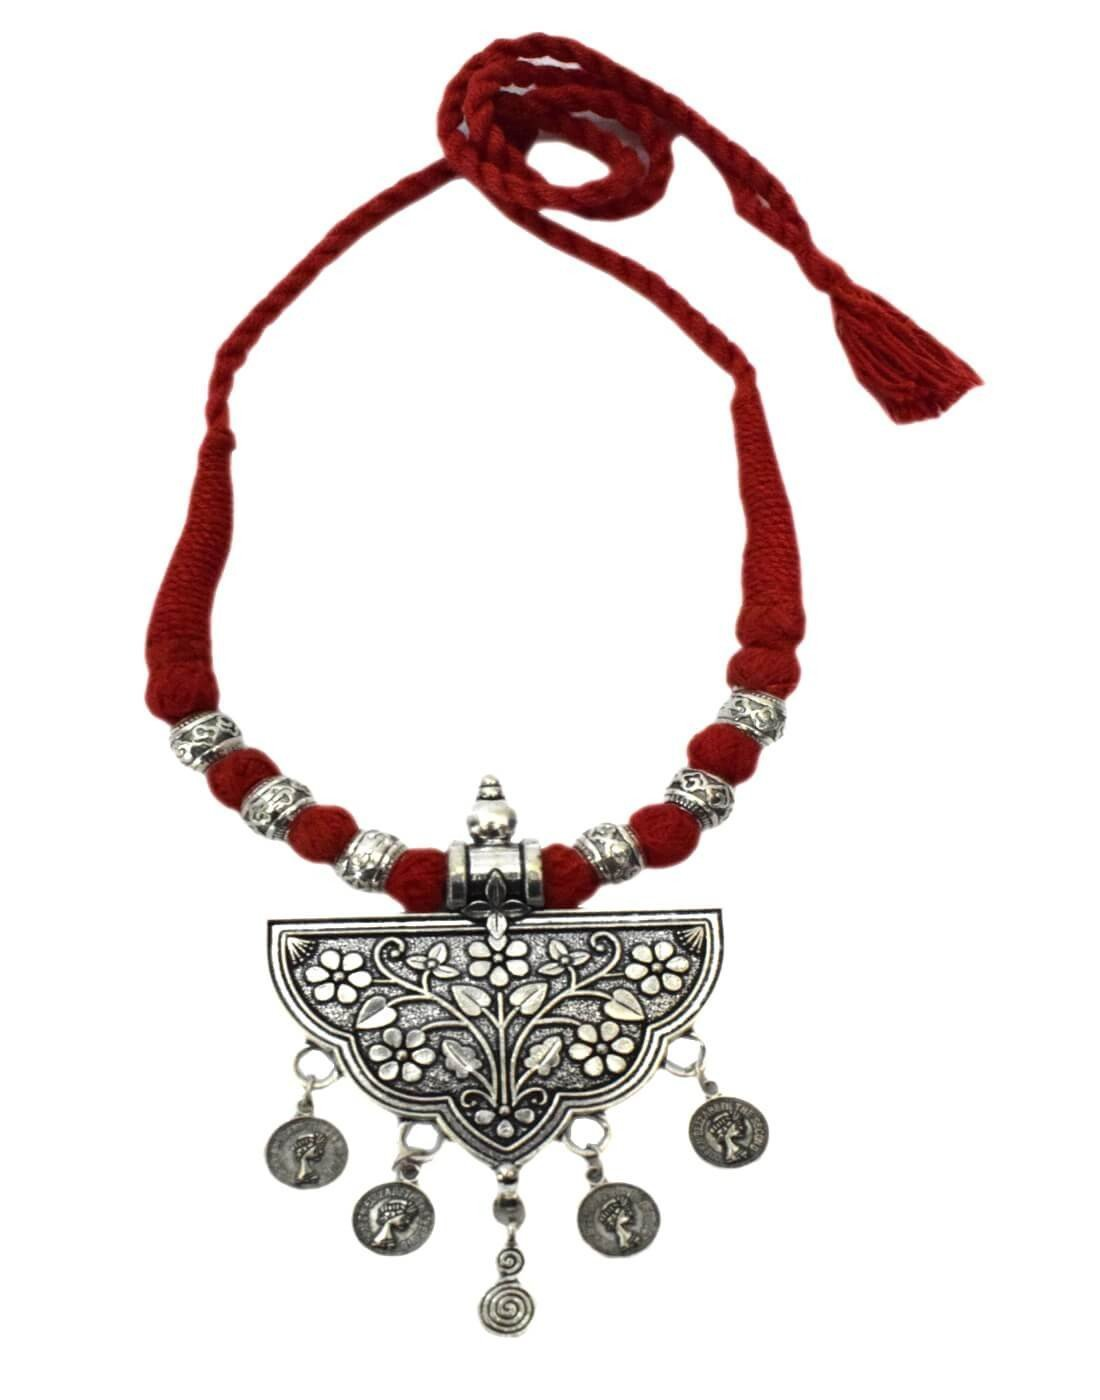 Threaded German Silver Necklace&Pendant-Red